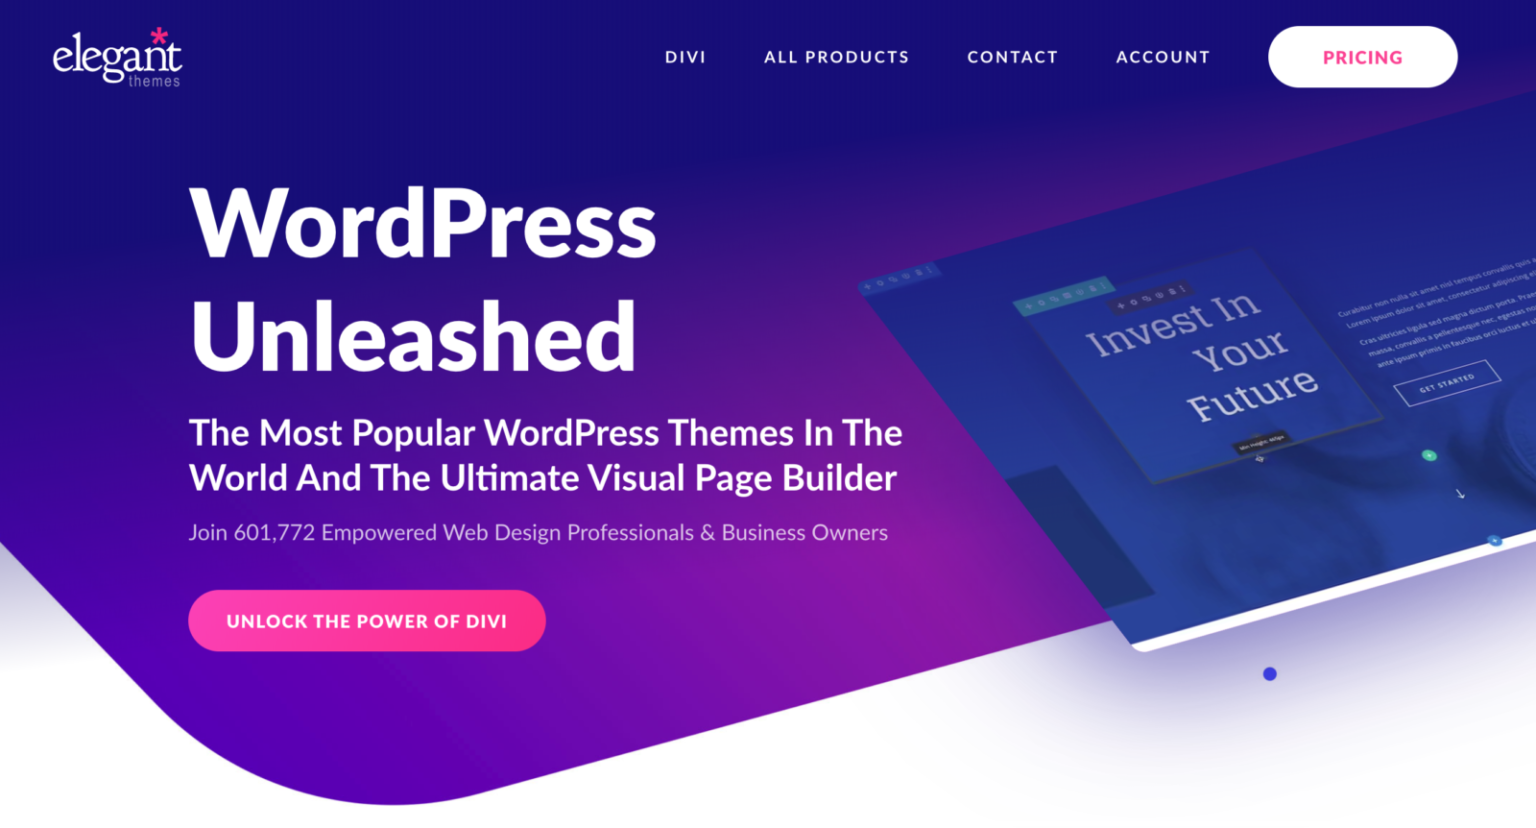 WordPress Unleashed - The Most Popular WordPress Themes In The World And the Ultimate Visual Page Builder